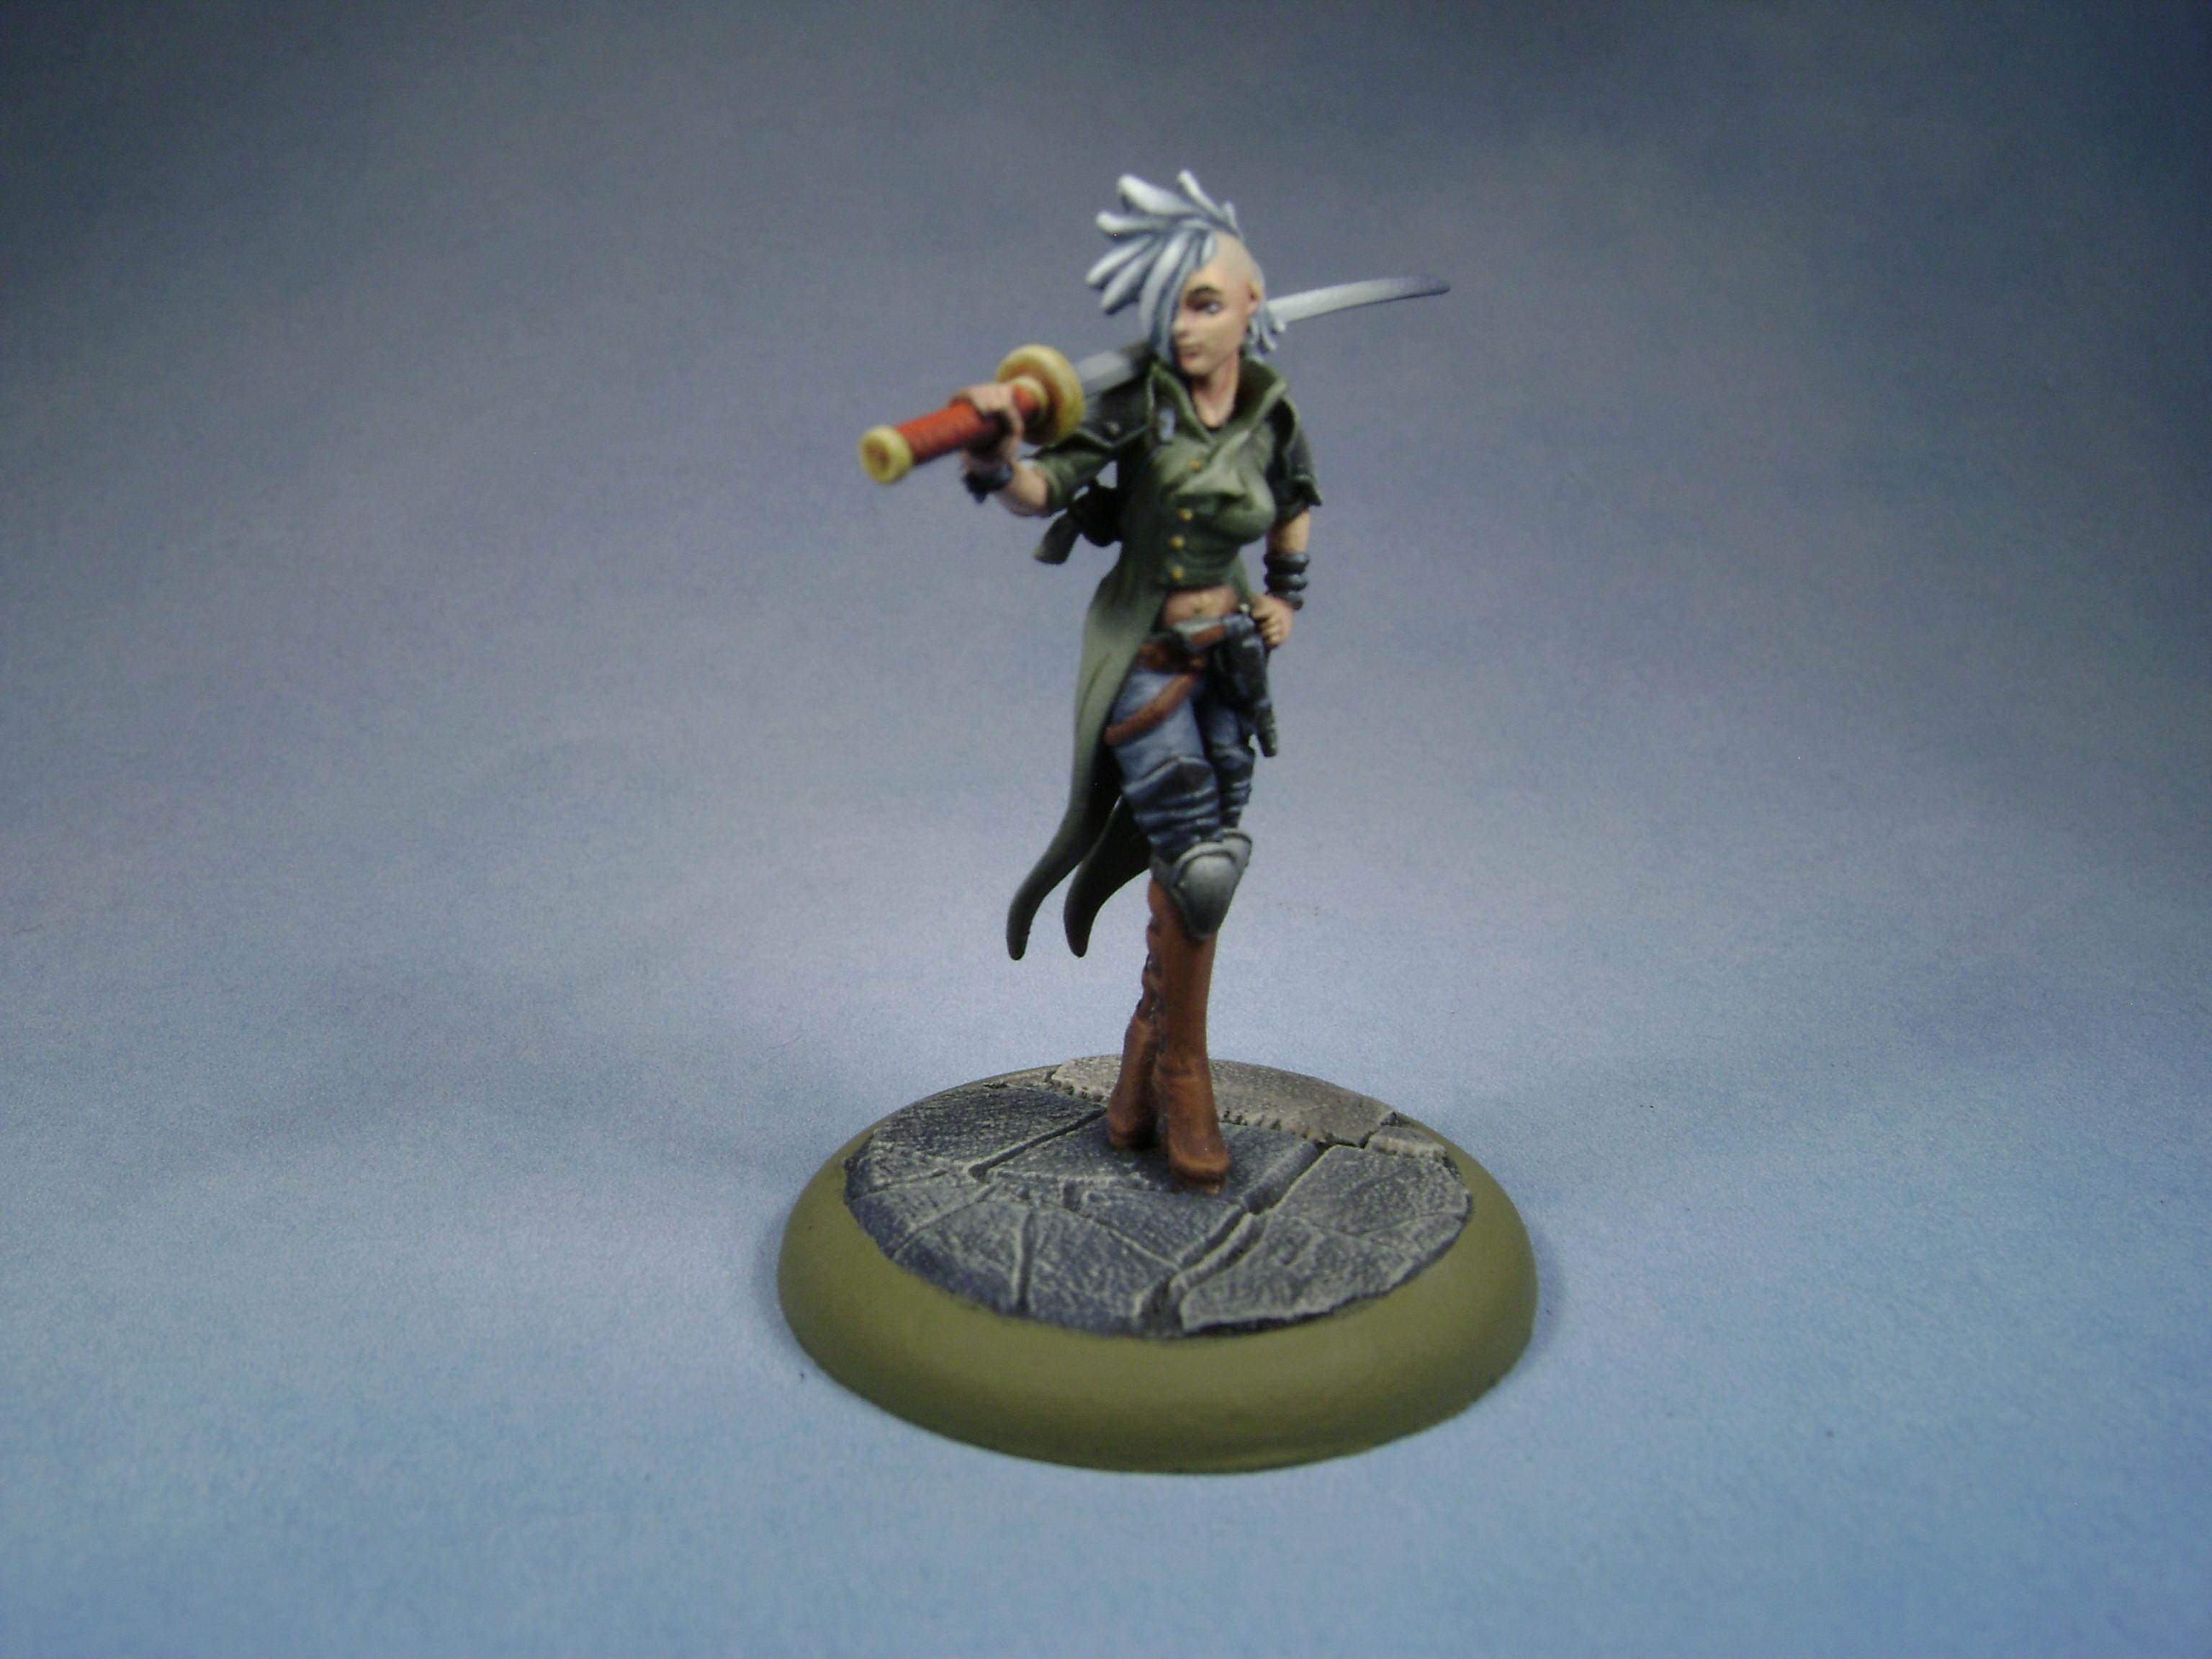 Malifaux, Miniatures, Models, Non-Metallic Metal, Outcasts, Painted, Sister, Viktoria, Viktoria Of Ashes